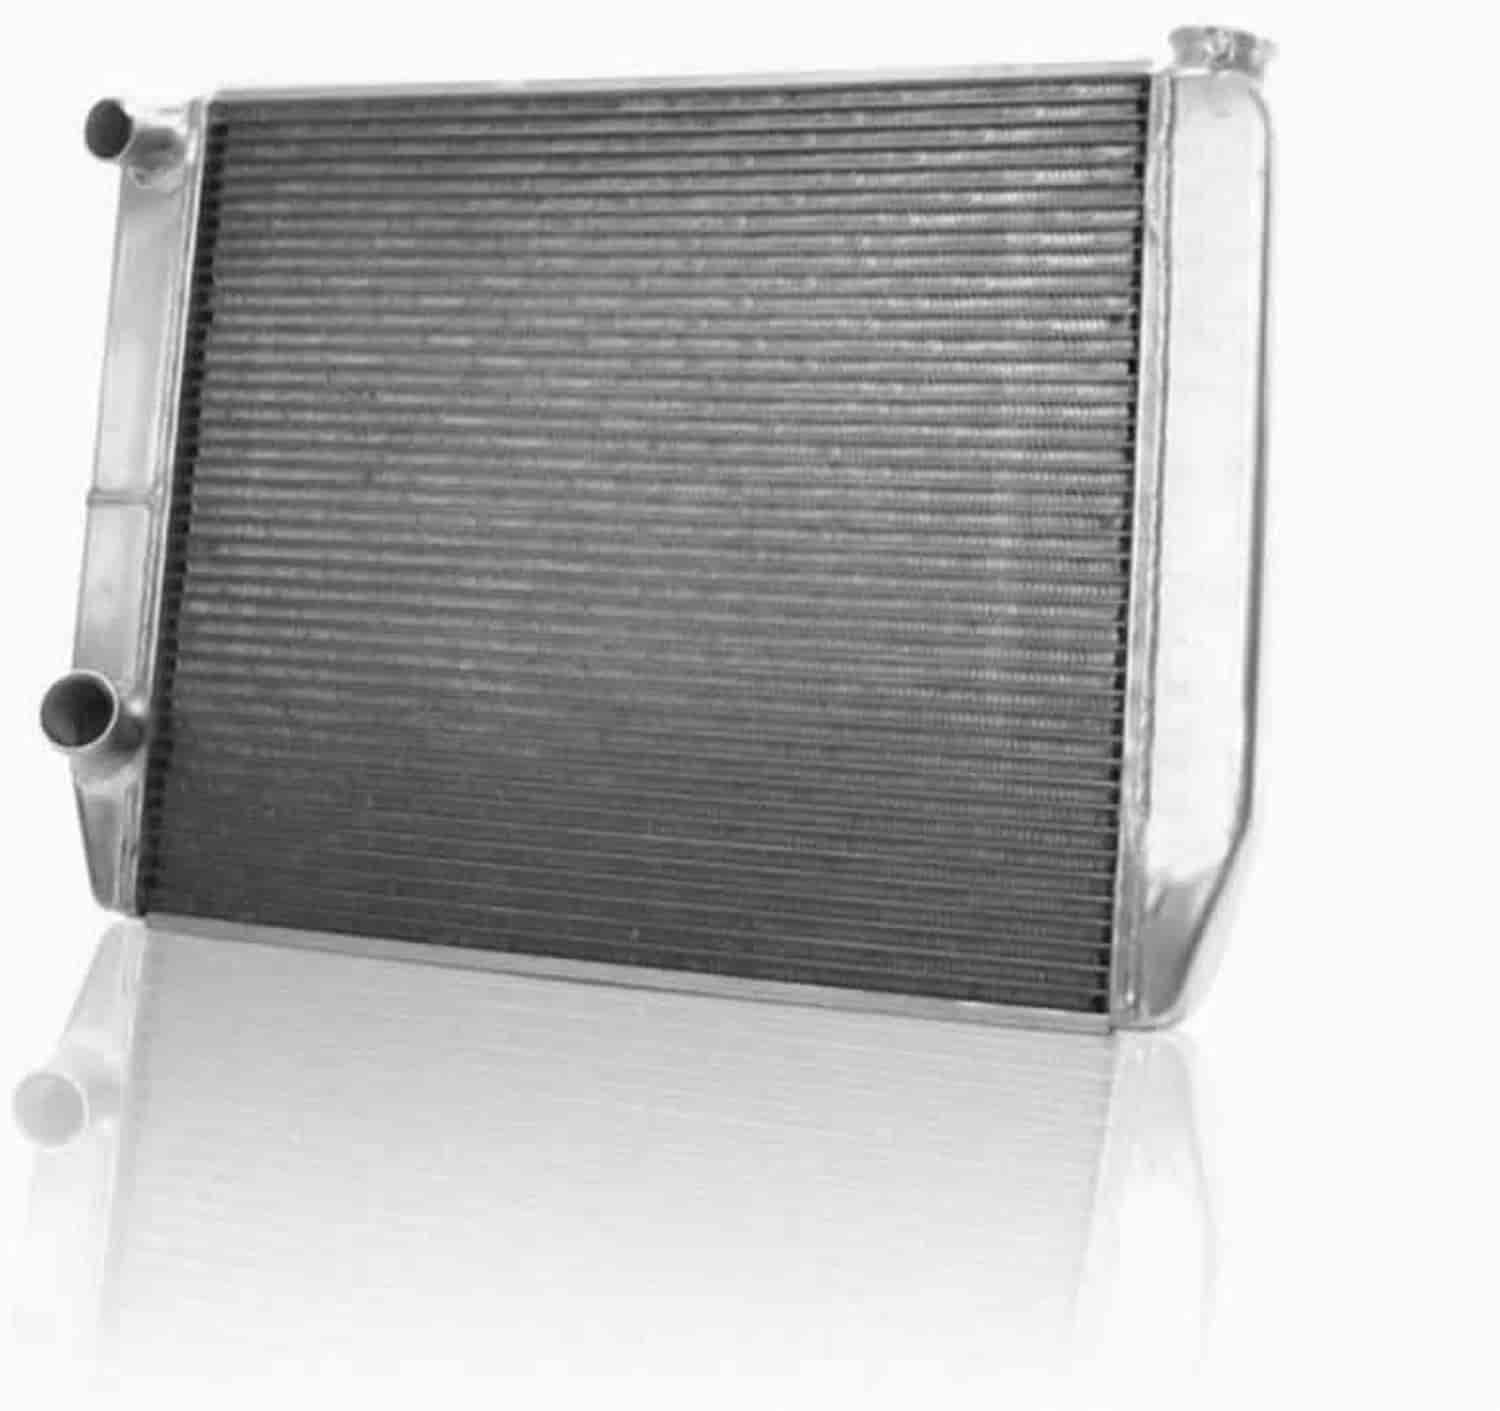 Griffin Radiators 1-59222-X